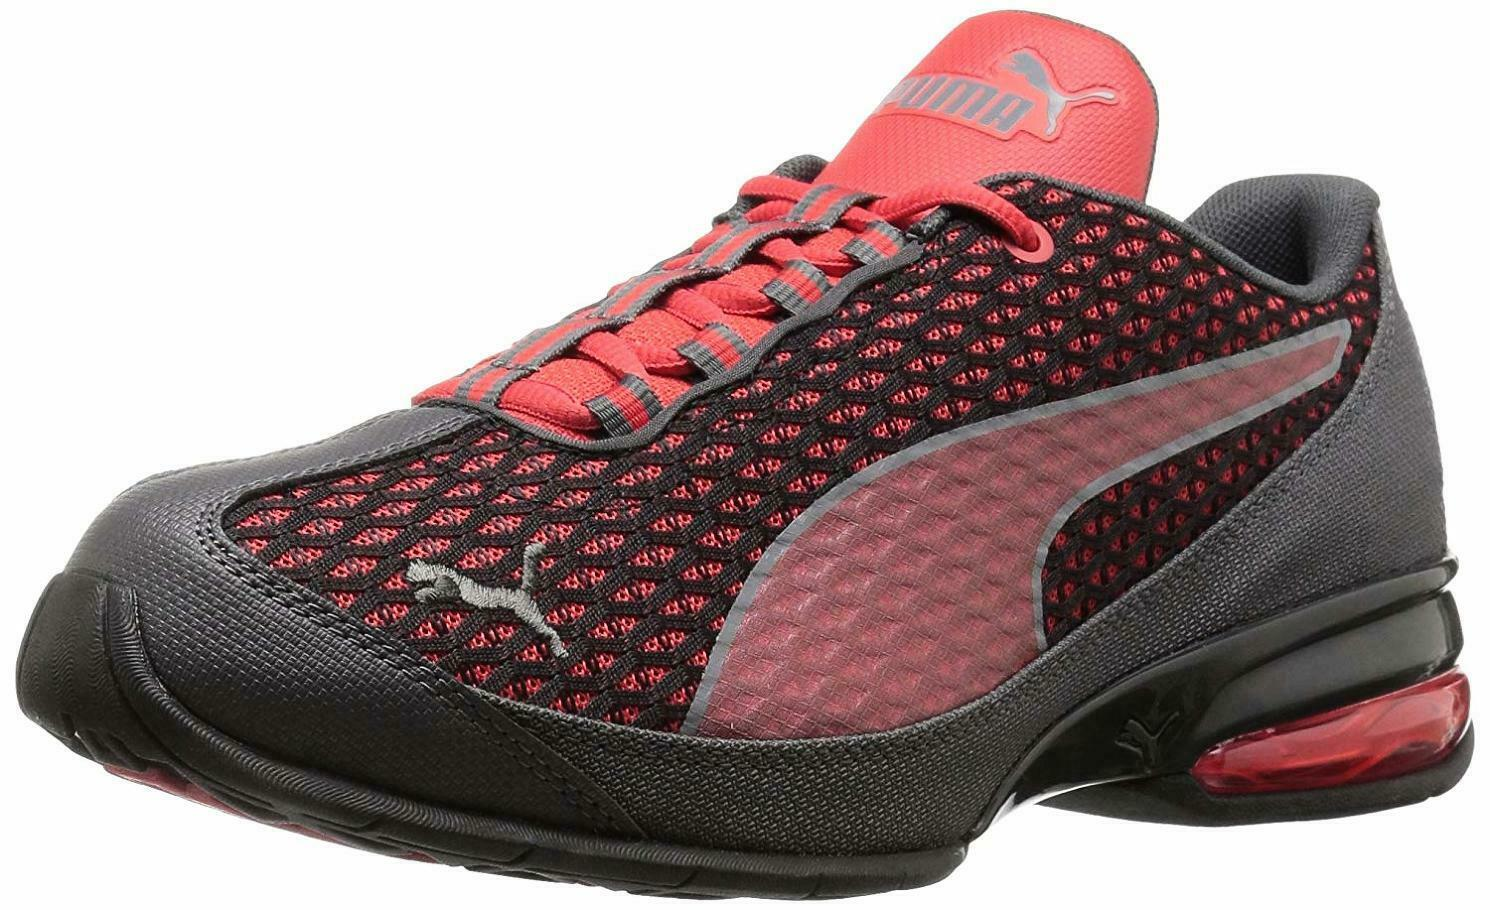 PUMA Men's Reverb Cross-Trainer shoes